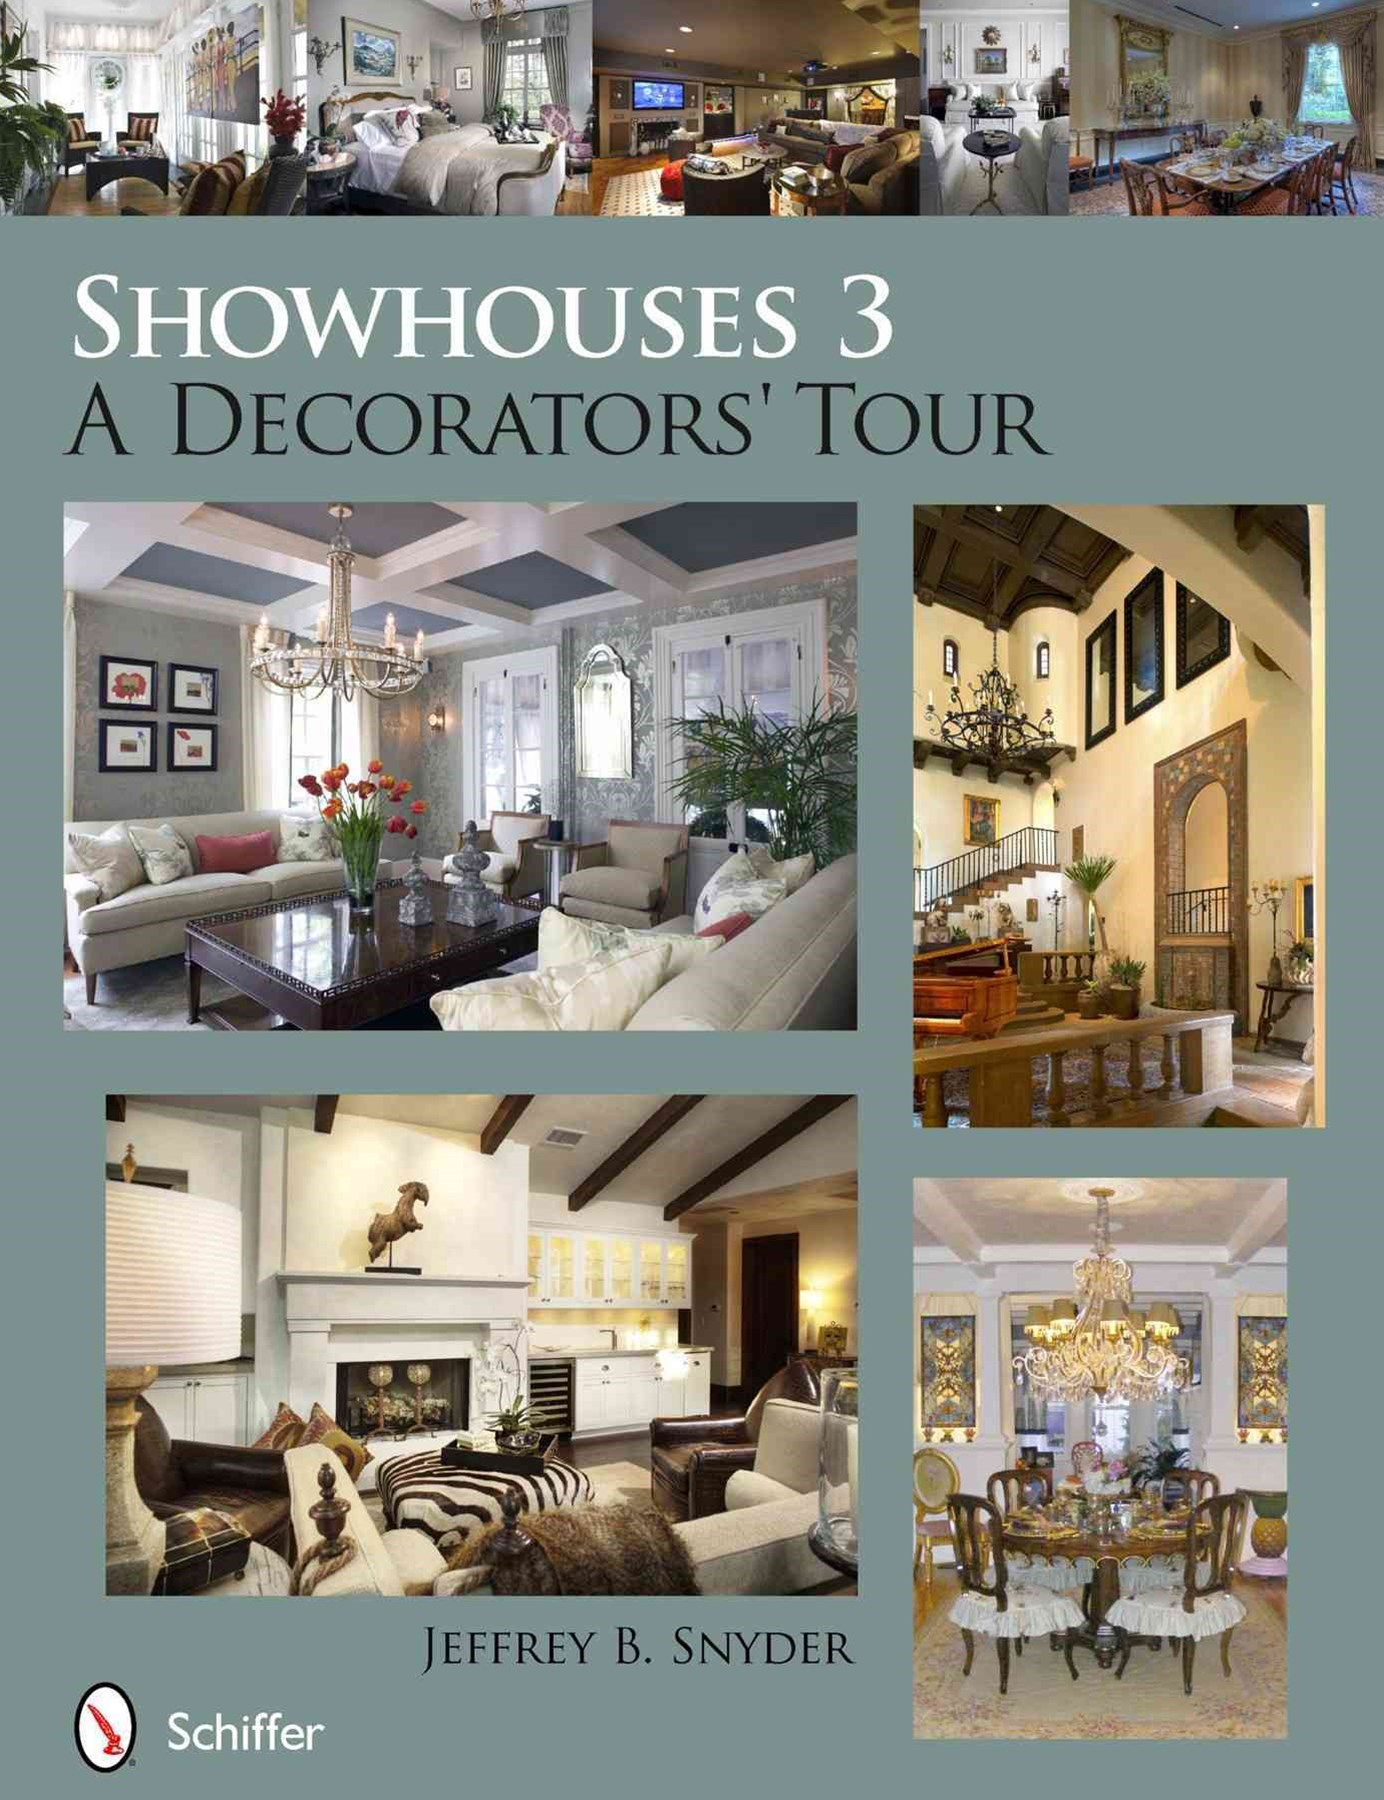 Showhouses 3: A Decorators Tour